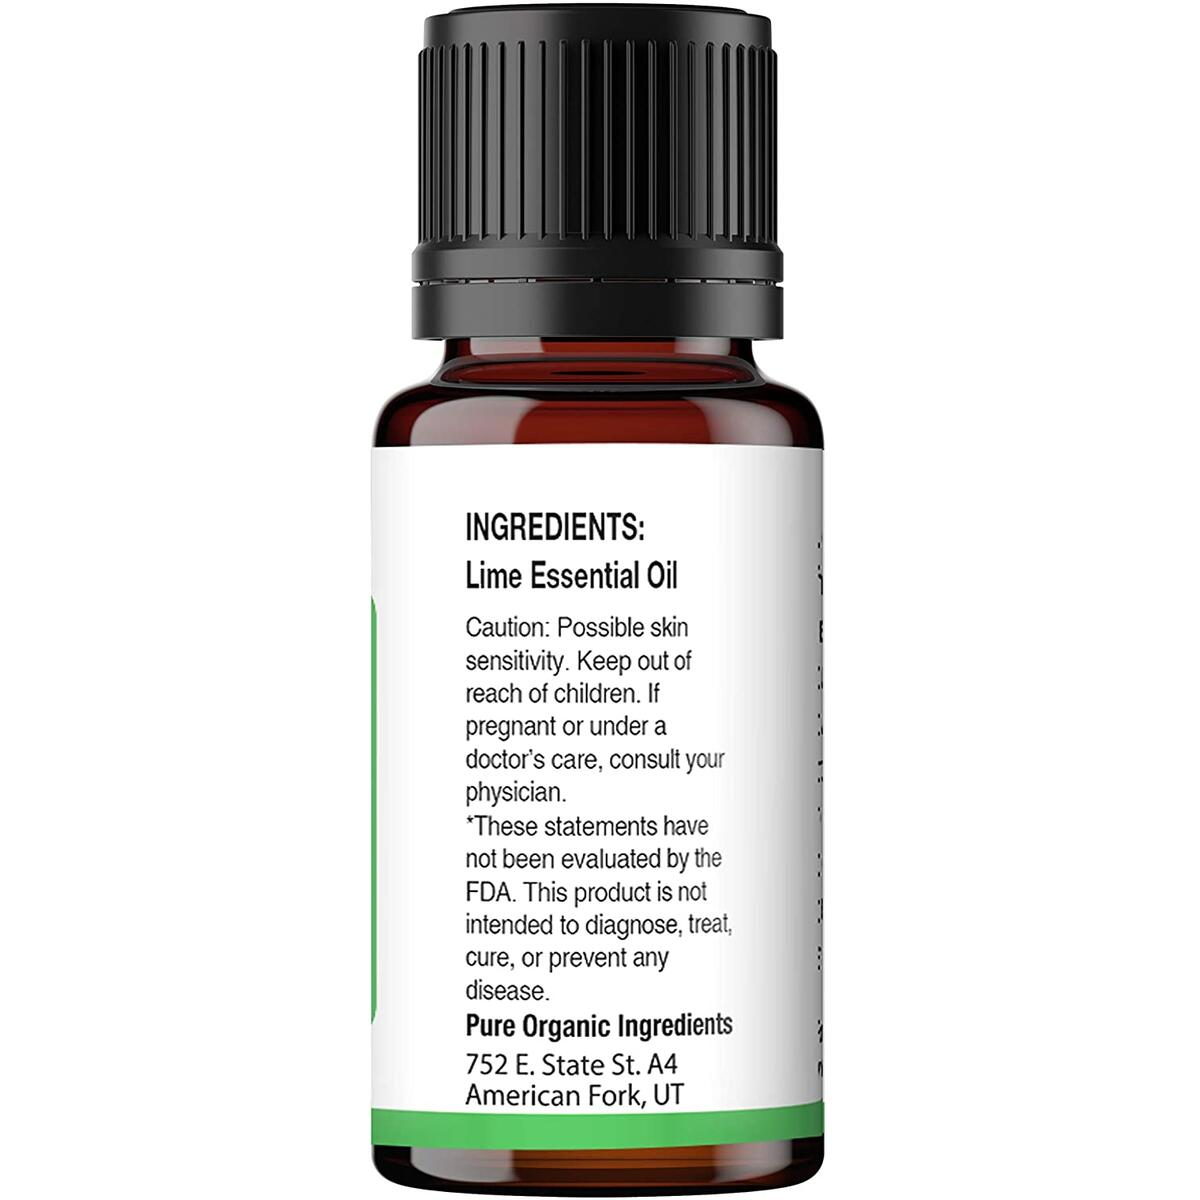 Pure Organic Ingredients Lime Essential Oil (15 ml), Convenient Dropper Cap Bottle, Food Safe, All-Natural, No Fillers, Refreshing & Energizing Aroma